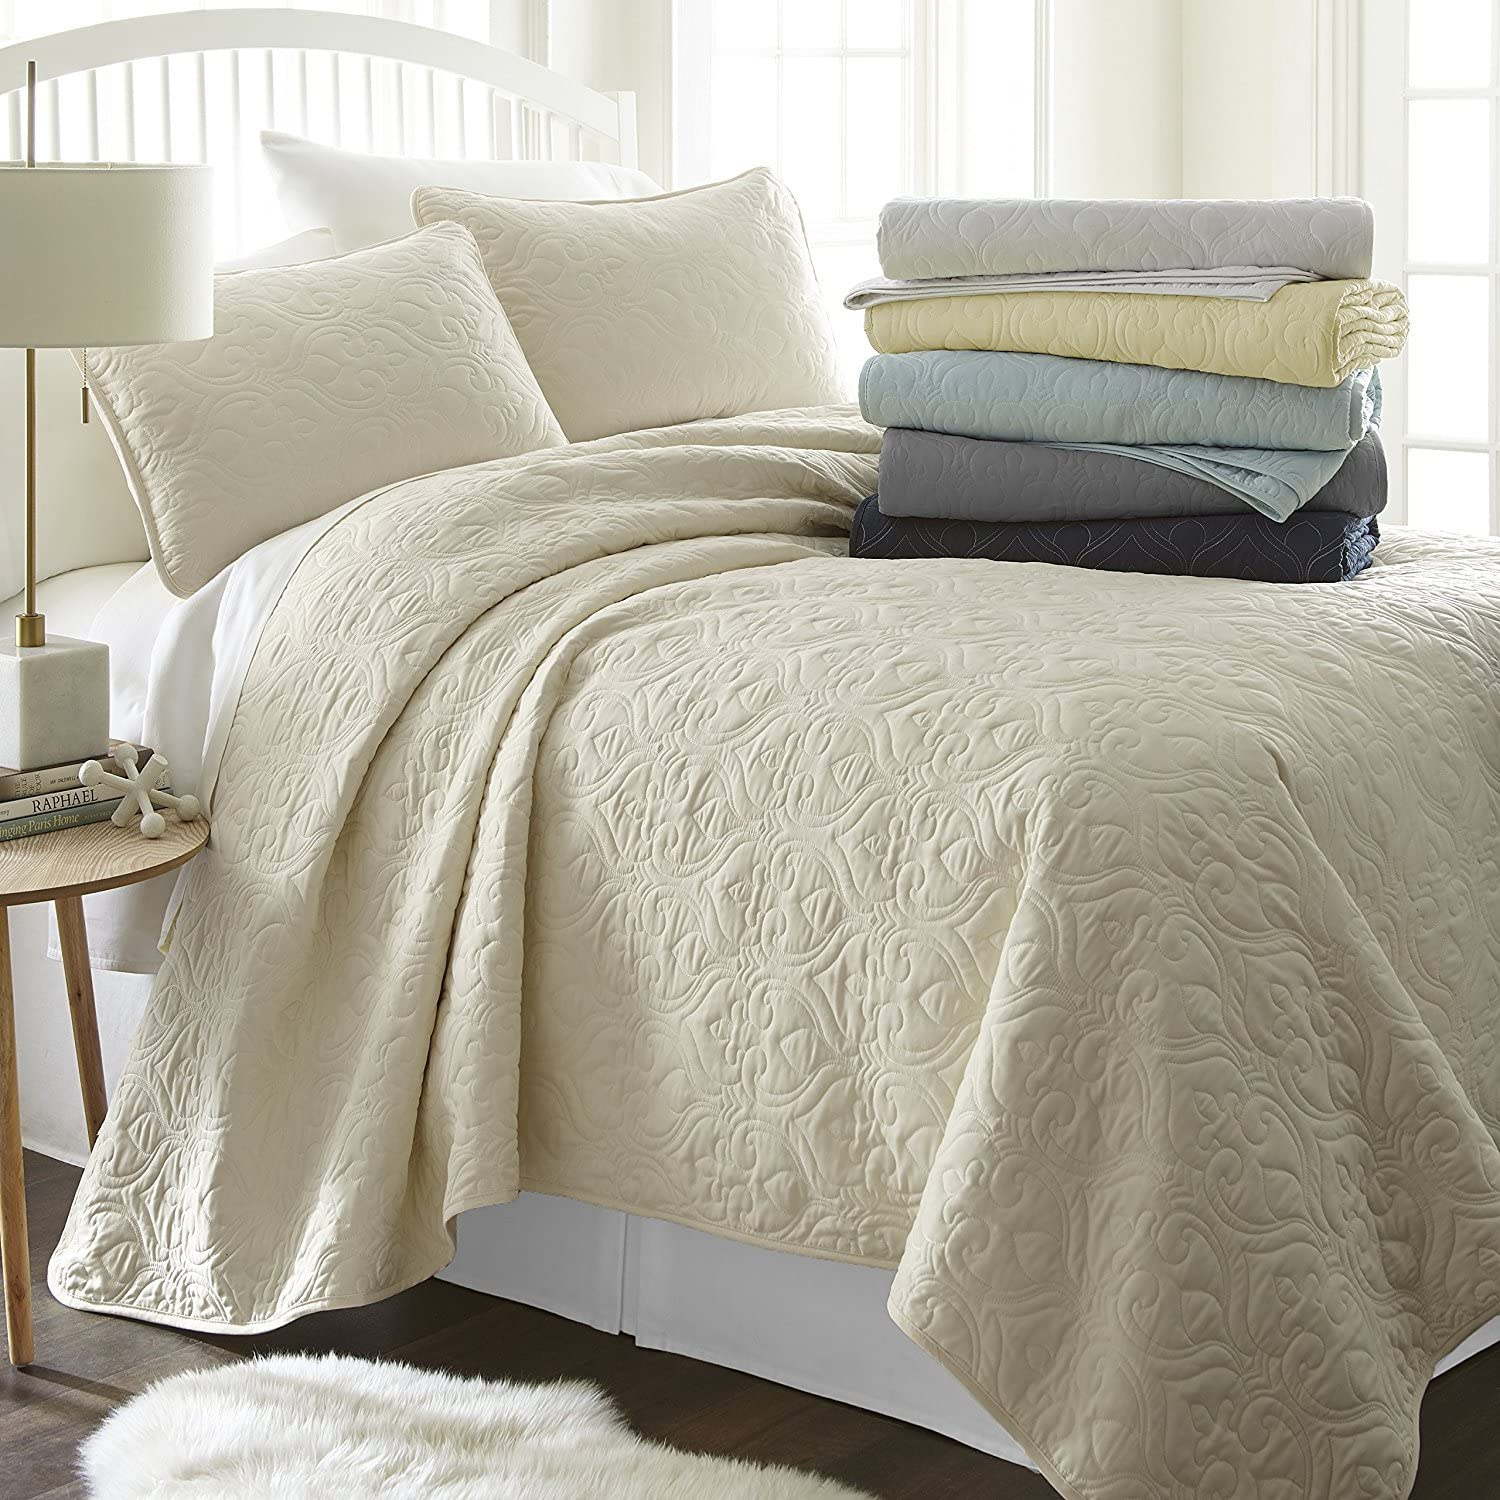 ienjy Home Square Patterned Quilted Coverlet Set King Ivory